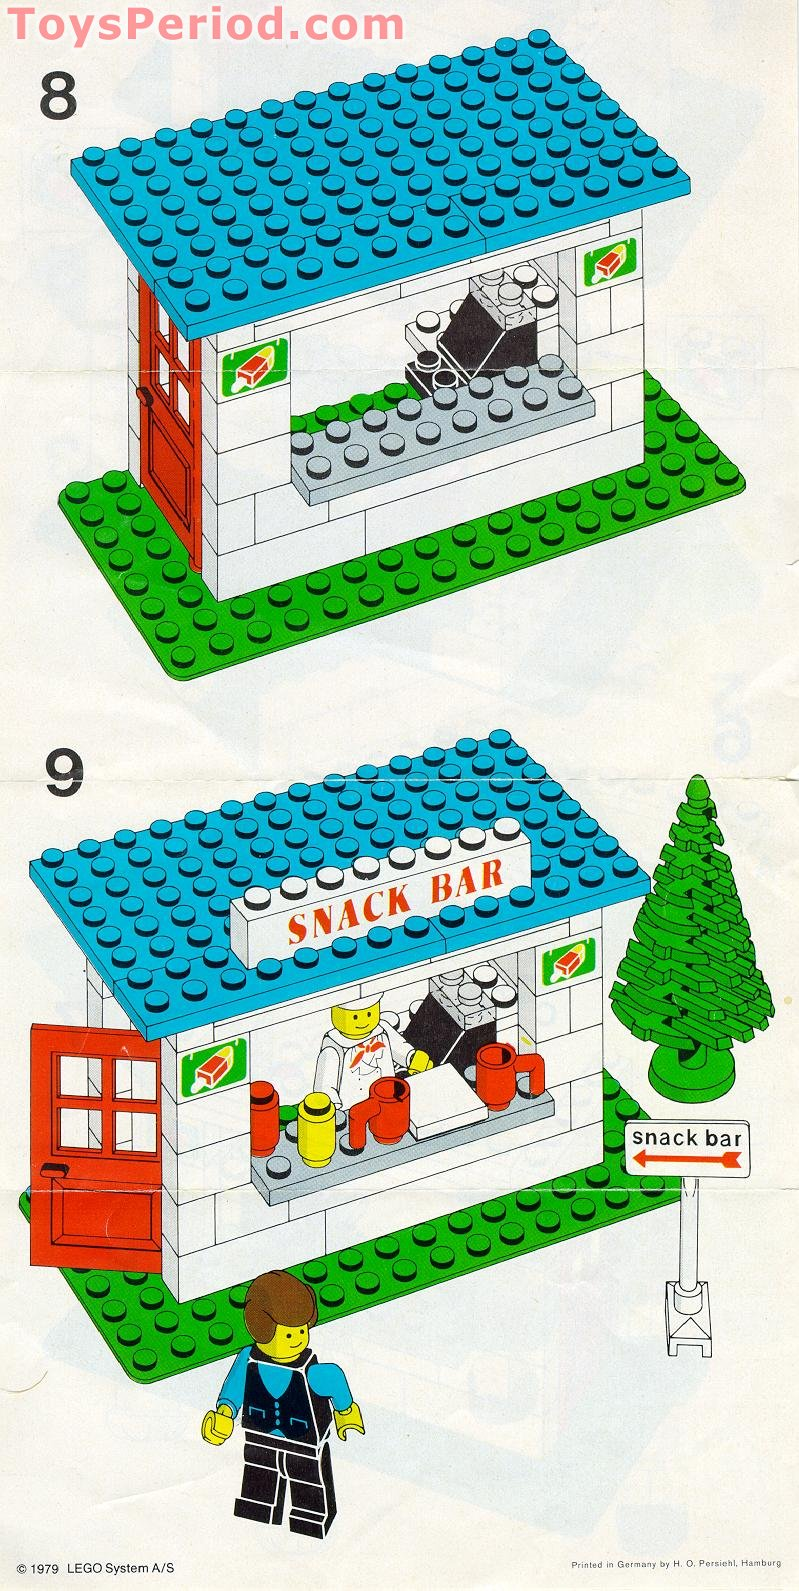 lego 675 snack bar set parts inventory and instructions lego reference guide. Black Bedroom Furniture Sets. Home Design Ideas